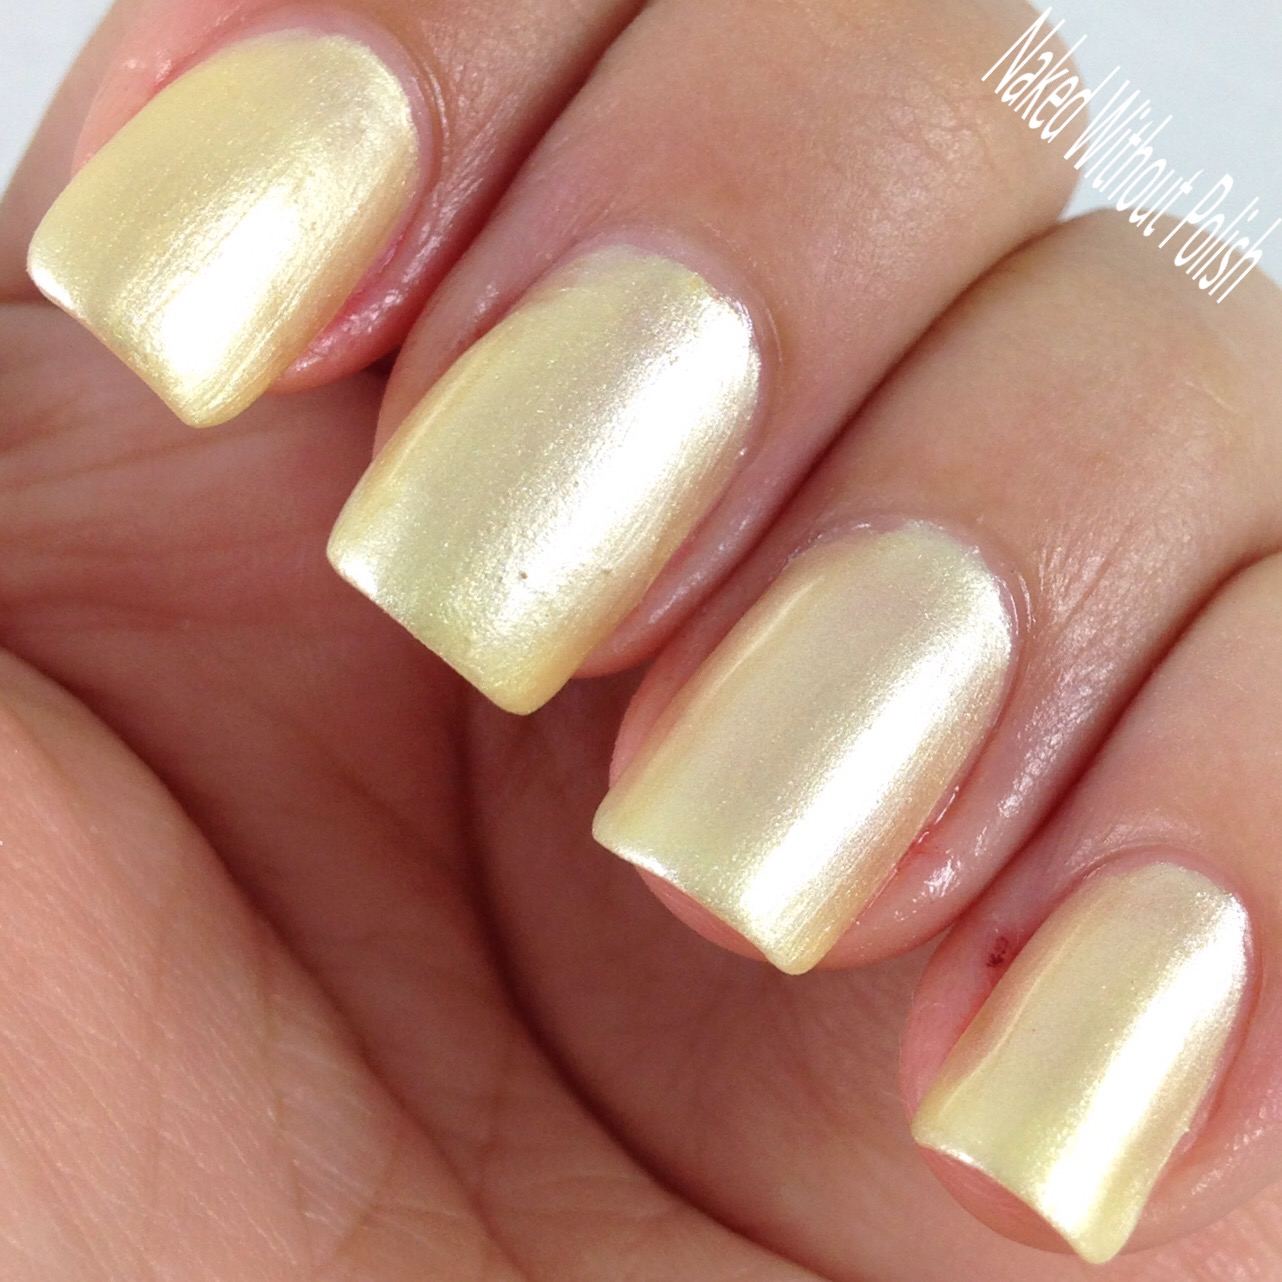 My-Stunning-Nails-Lemon-Macaroon-7